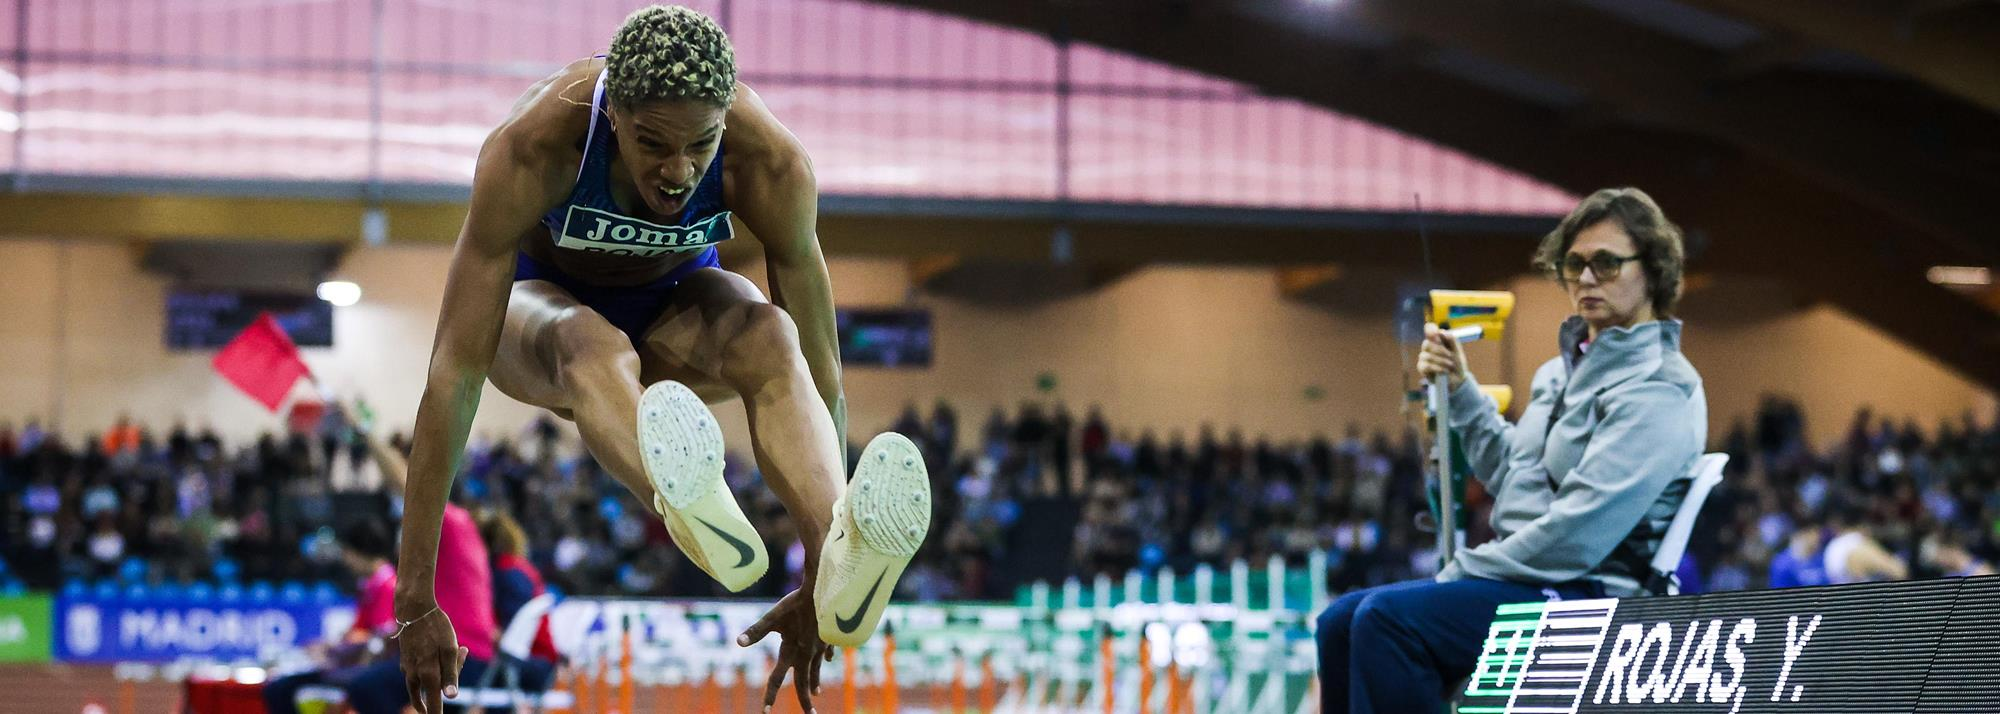 Rojas breaks world indoor triple jump record in Madrid with 15.43m